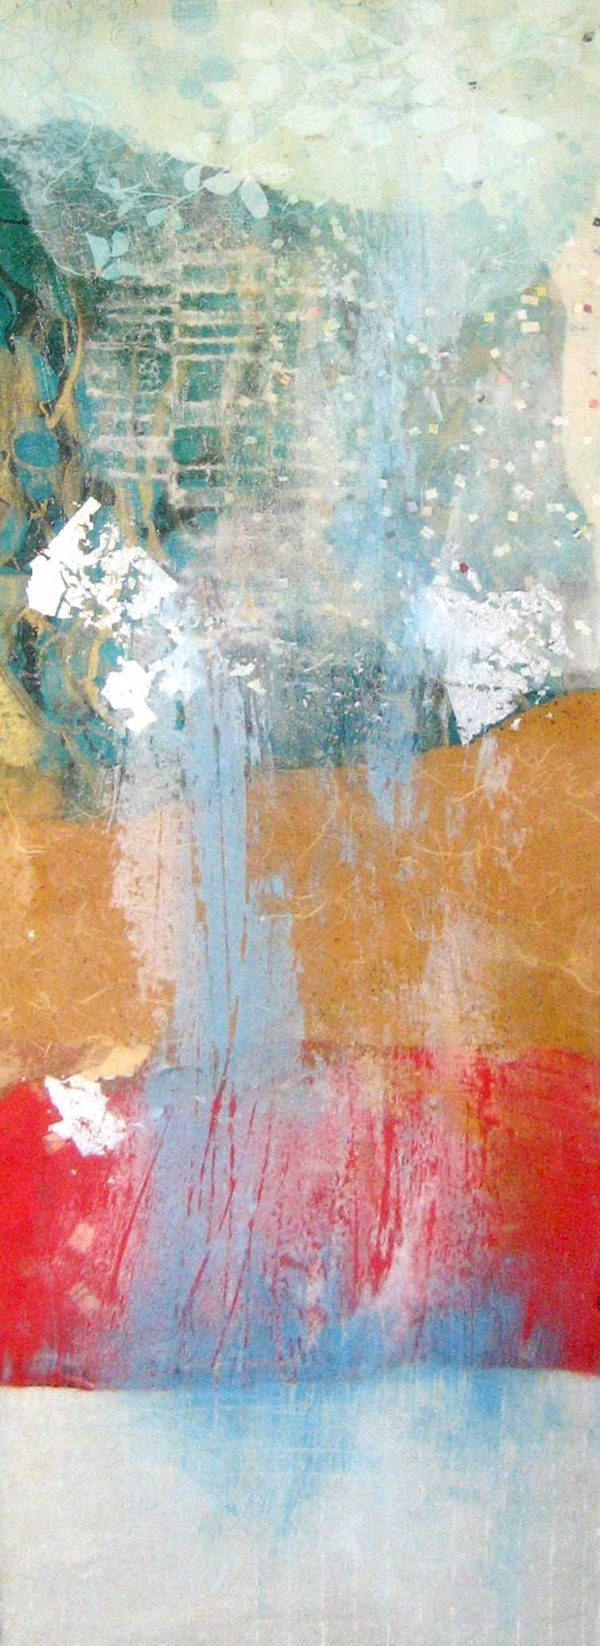 Paul Tiersky Abstract Mixed Media Resin Sculpture on Board in Red Blue and Orange